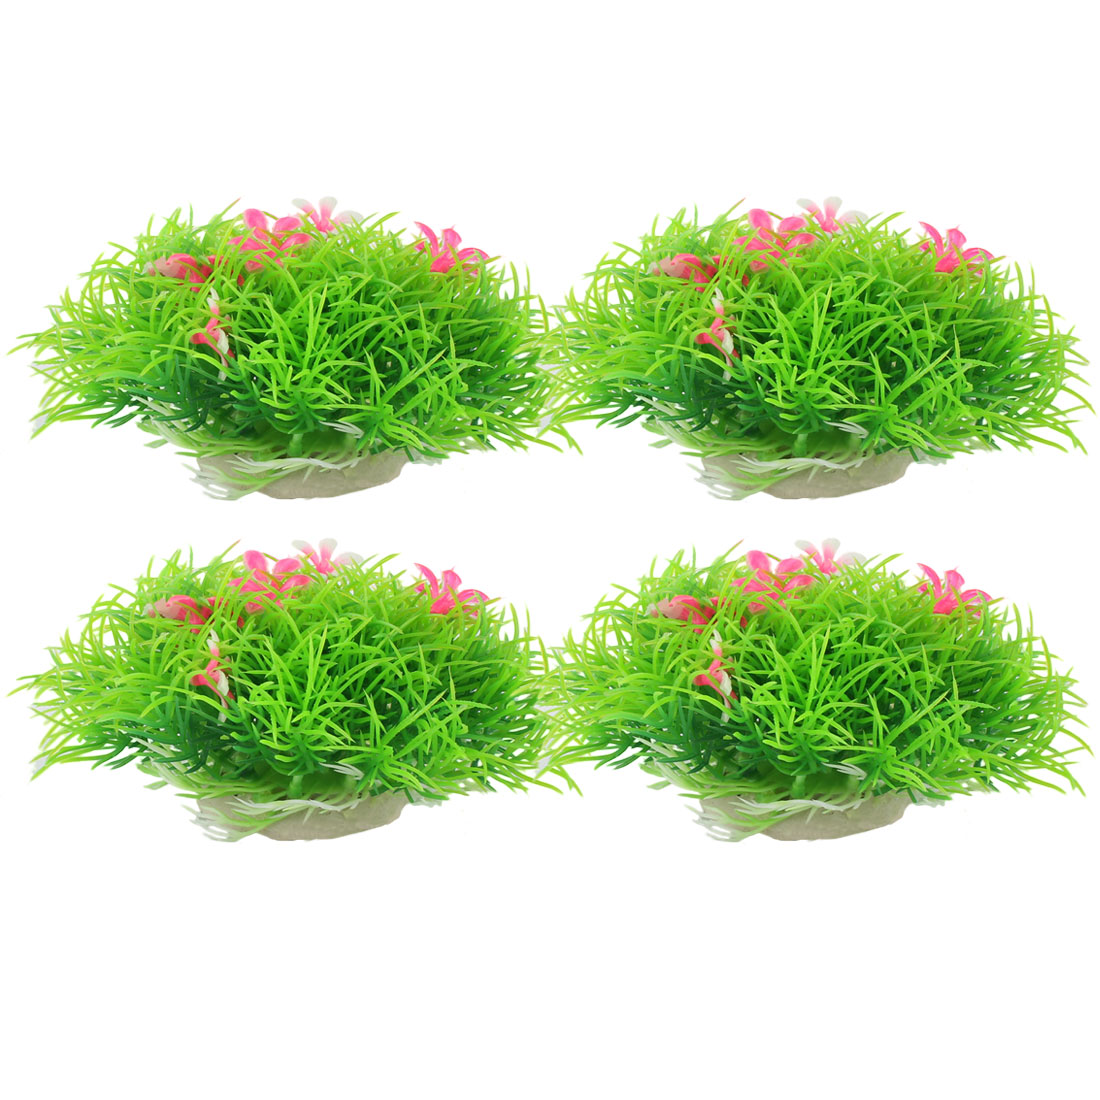 Fish Tank Aquarium Underwater Plastic Realistic Artificial Grass Ball Plant Ornament 4pcs